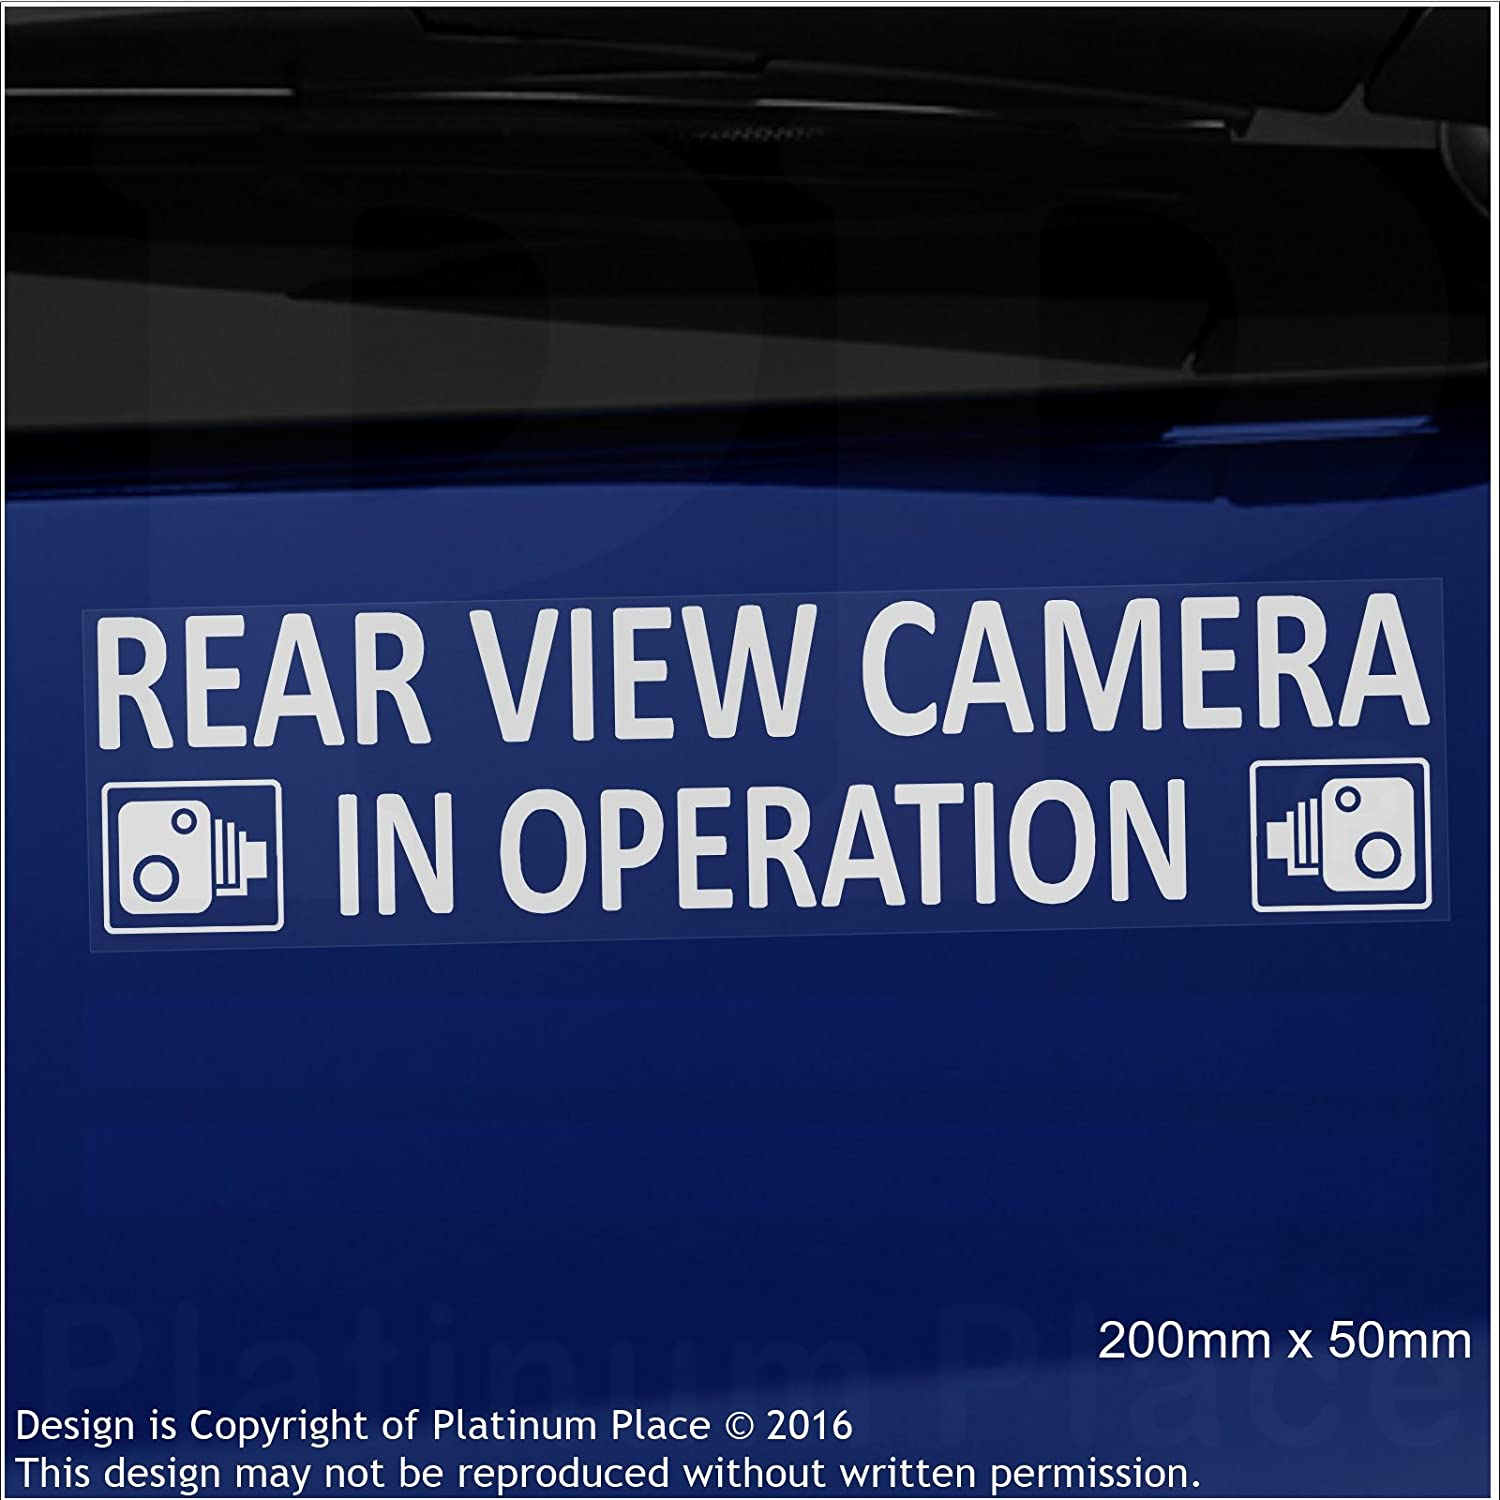 CCTV Sign-Van,Lorry,Truck,Taxi,Bus,Mini Cab,Minicab Safety and Security-Go Pro,Dashcam Platinum Place 2 x EXTERNAL 200 x 50mm-Rear View Camera In Operation Warning Stickers-White on Clear-